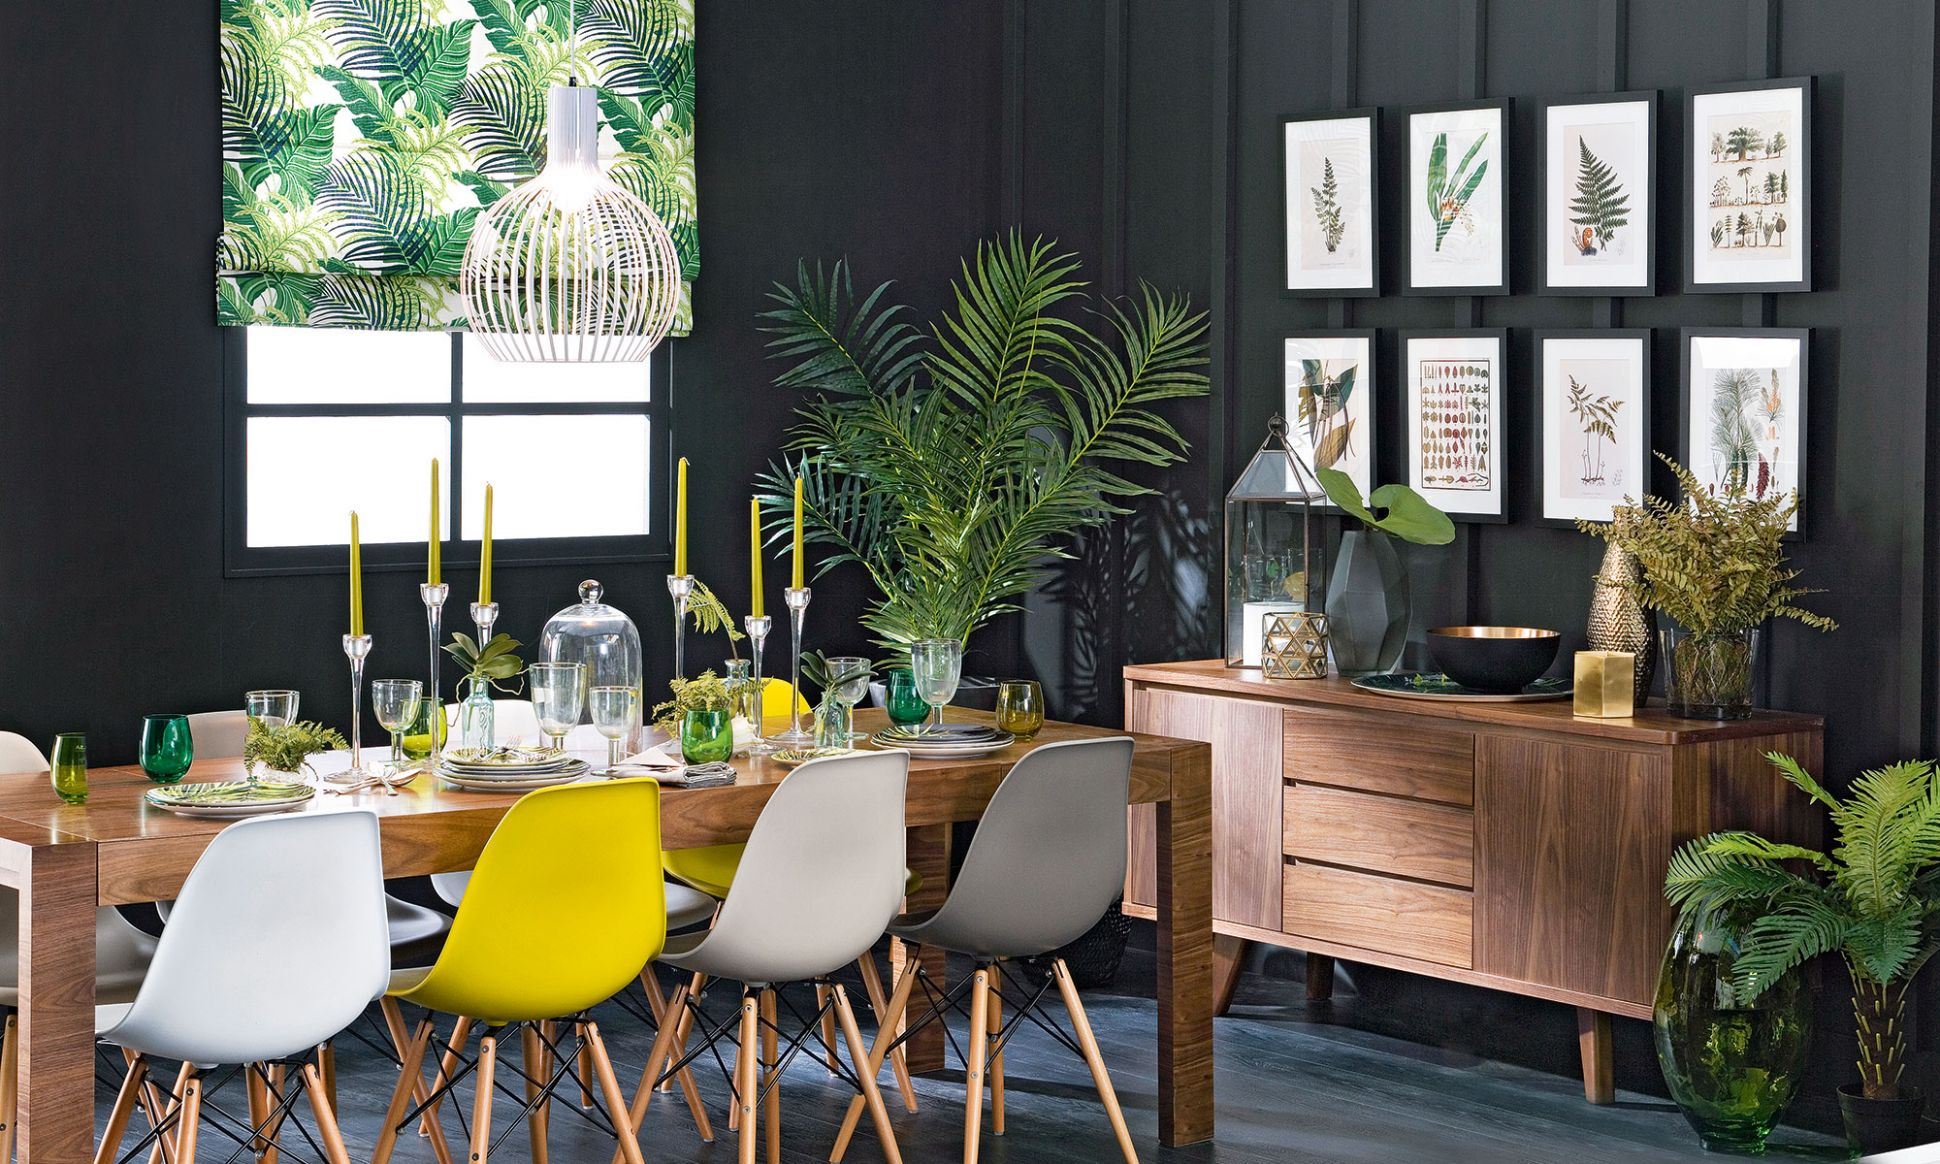 Budget dining room ideas – serve up a fresh look on a shoestring - dining room update ideas